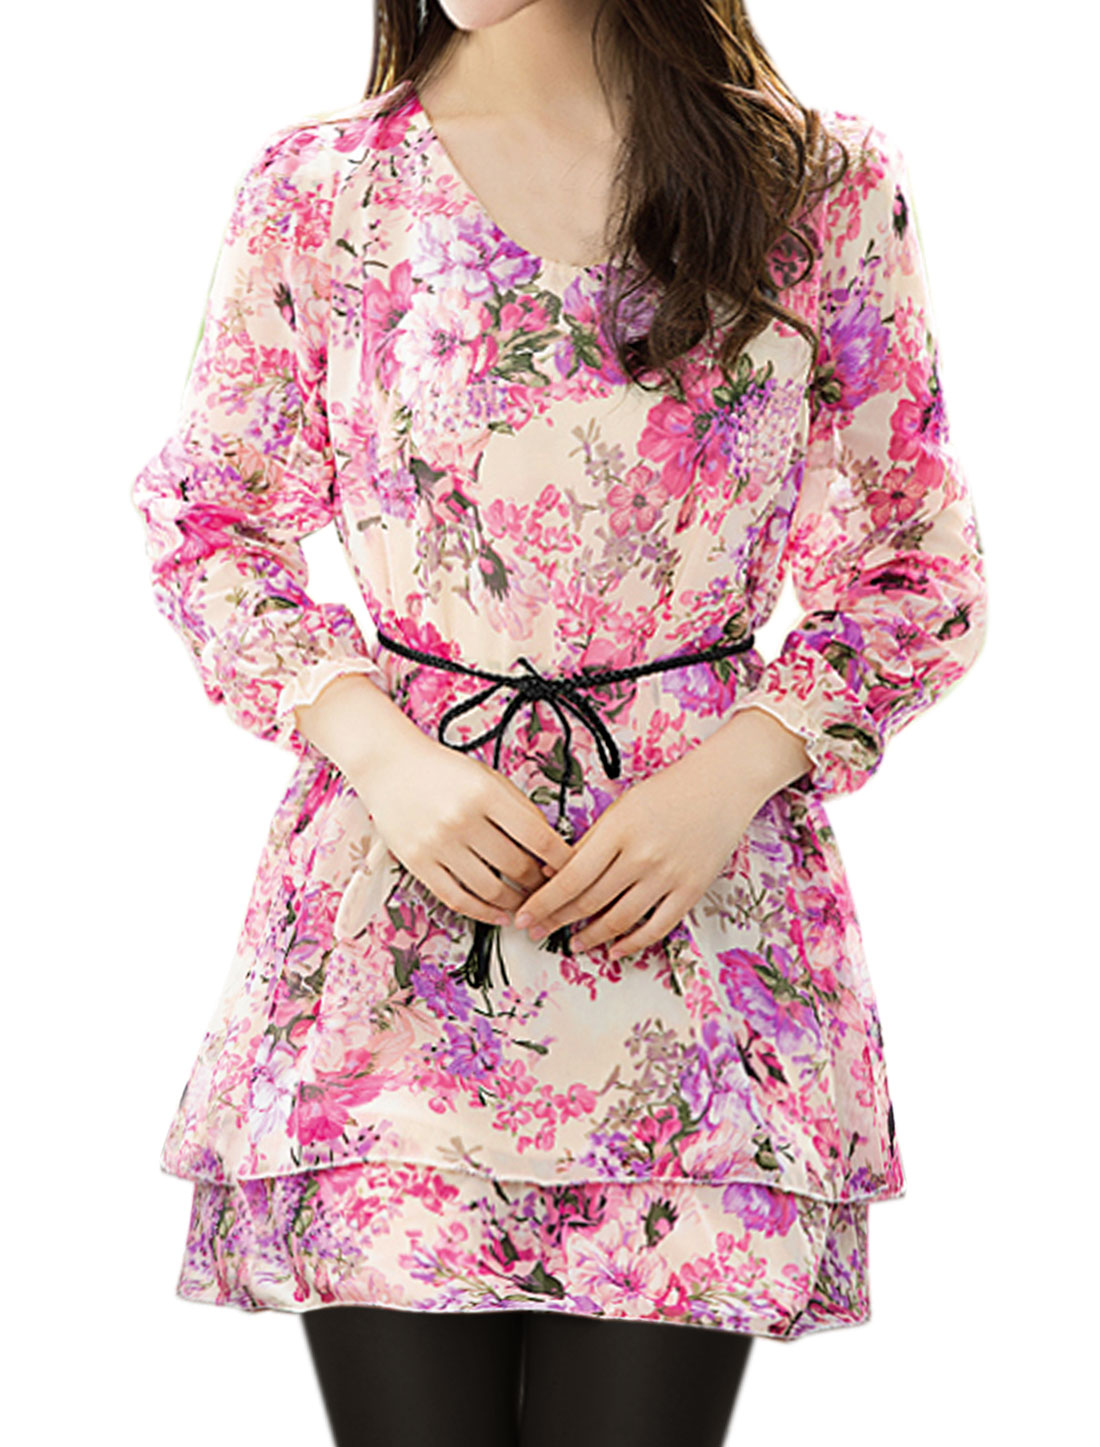 Women Scoop Neck Layered Tunic Floral Top w Waist String Pink S